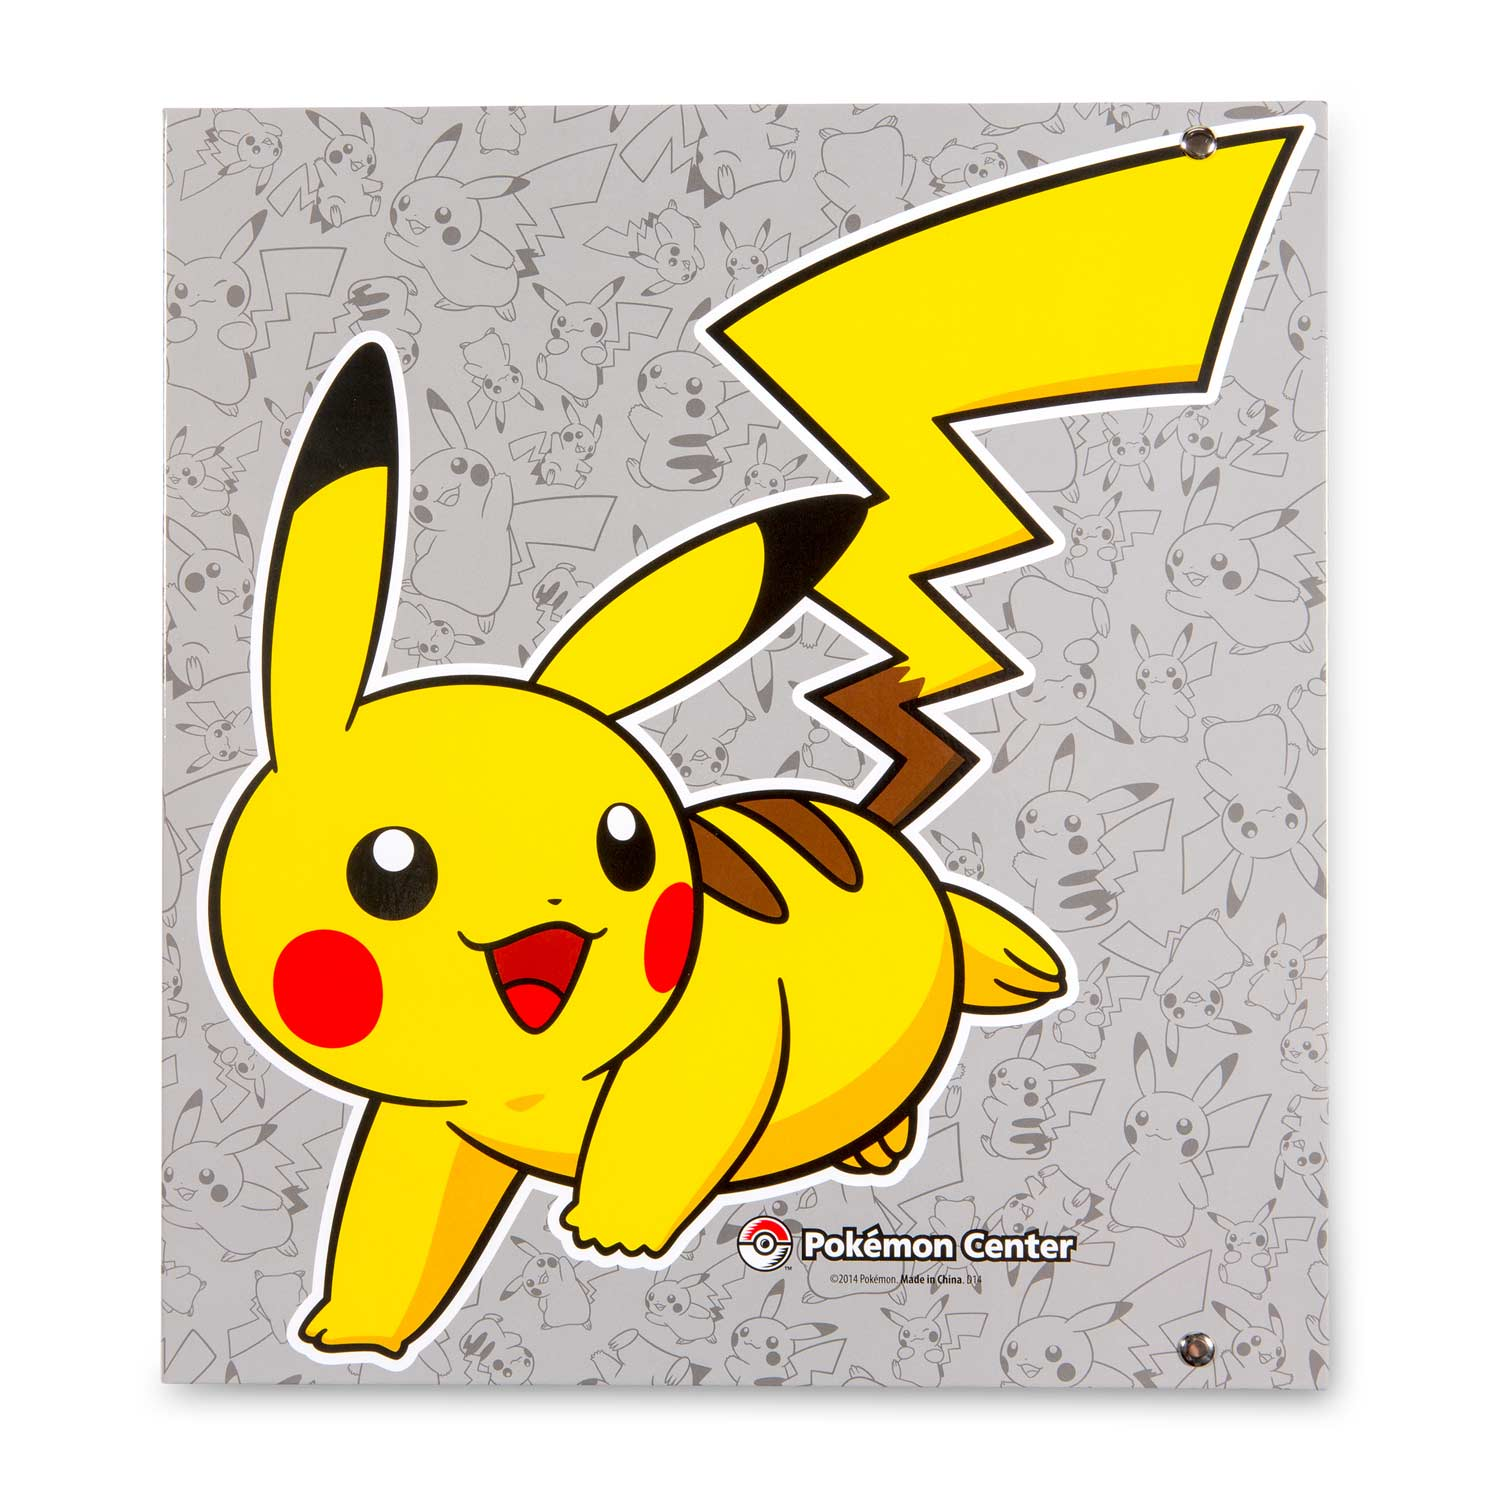 Image For Pikachu 1 In D Ring Binder From Pokemon Center 5 3074457345618259663 3074457345618262055 3074457345618268804